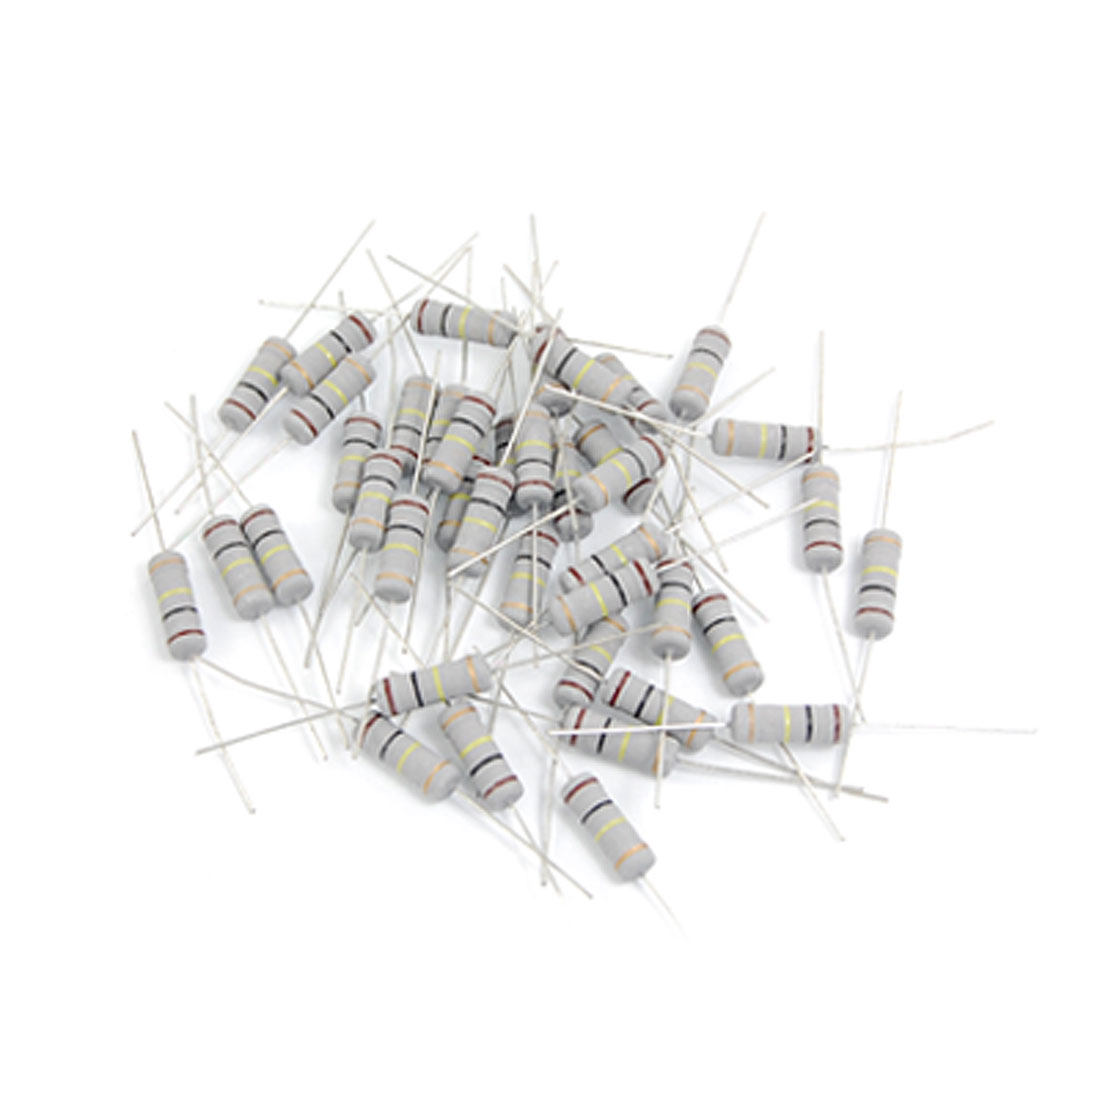 40 Pcs 2W Watt 100K Ohm 1% Axial Carbon Film Resistor